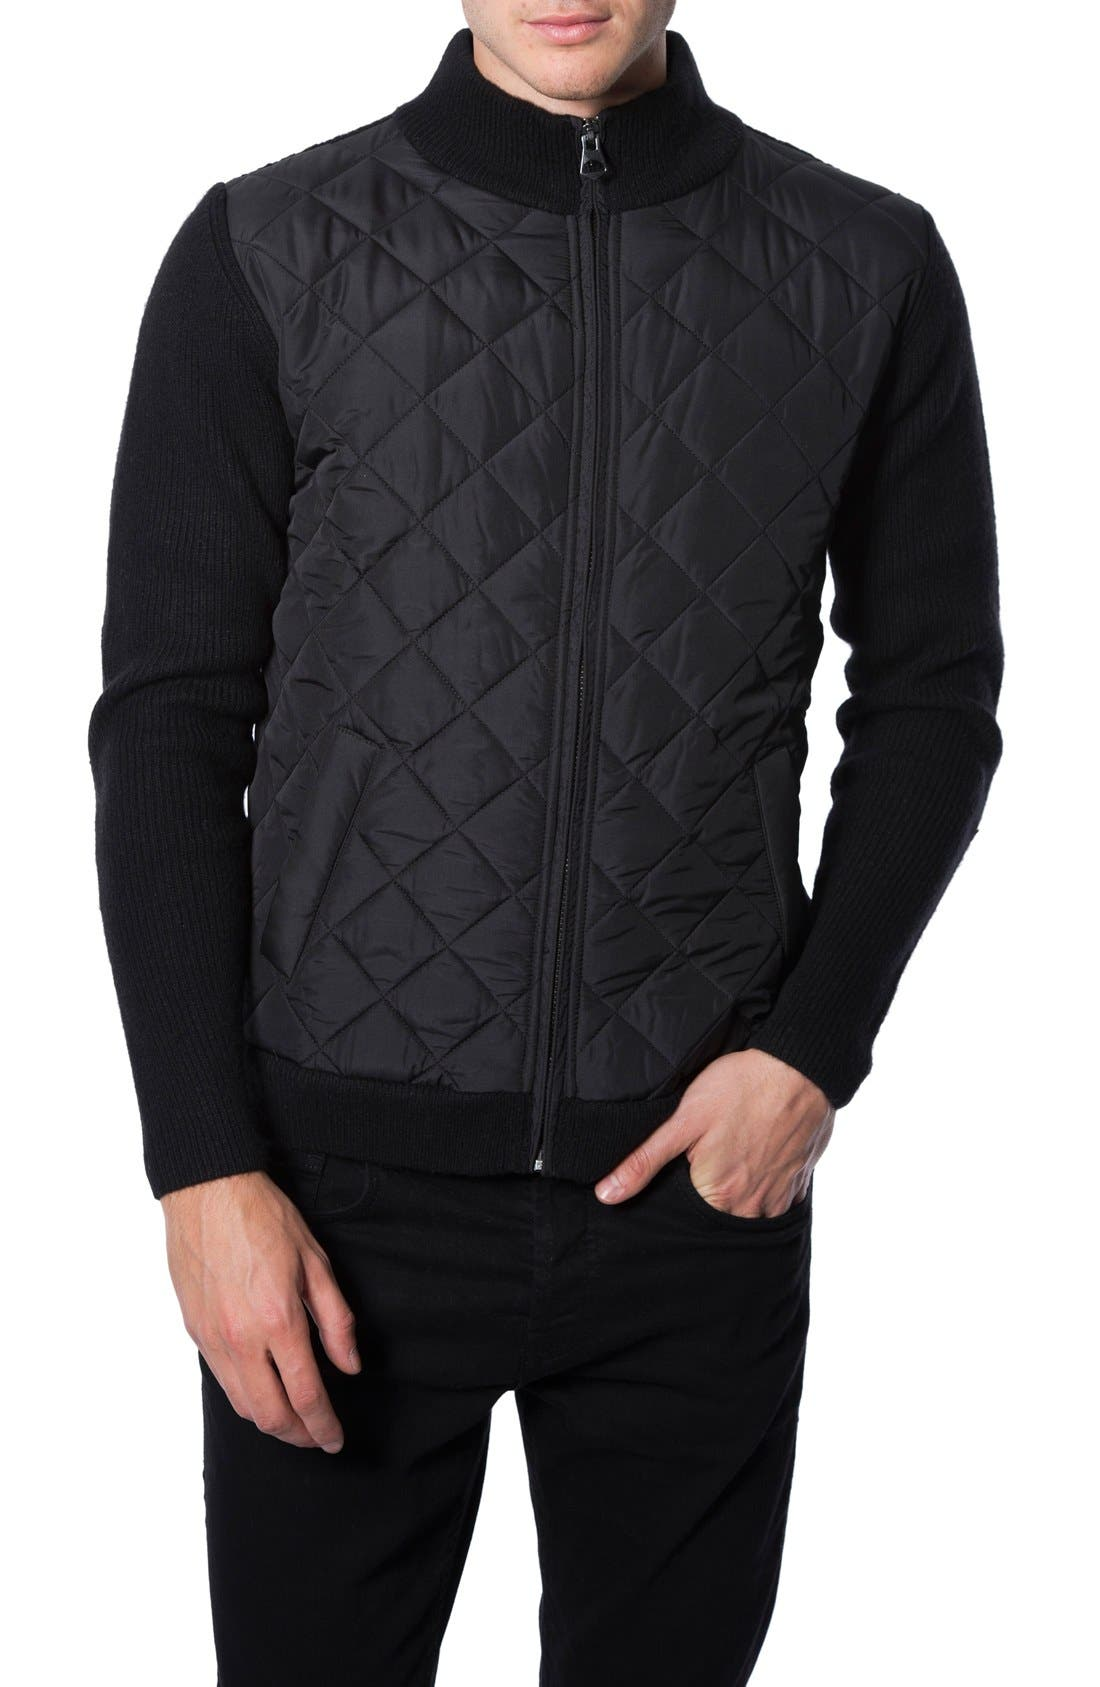 'Gatti' Quilted Panel Lambswool Knit Jacket,                         Main,                         color, 001